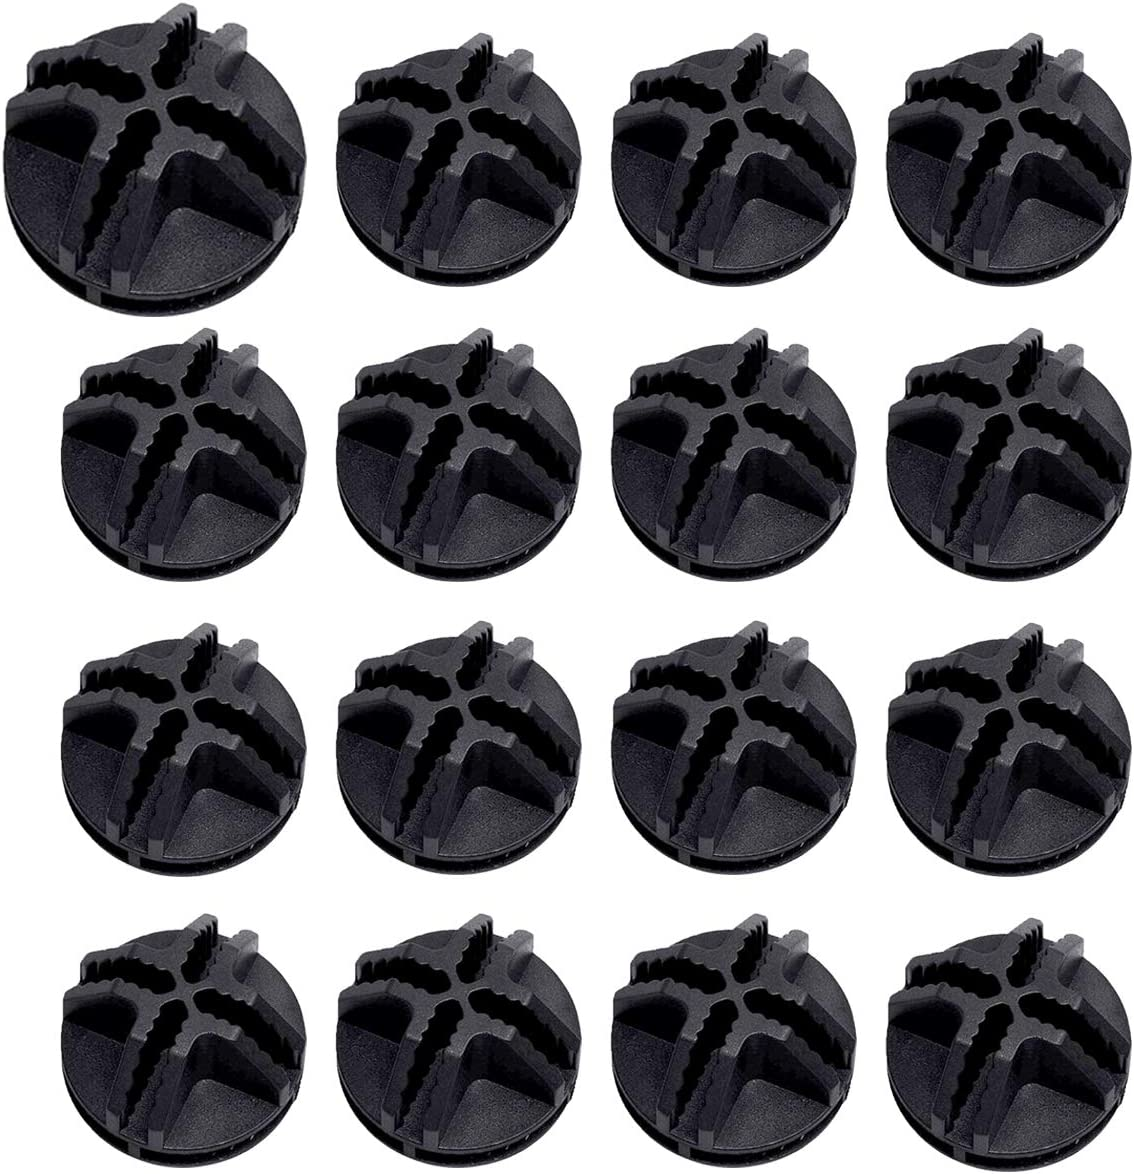 HAPY SHOP 40 Pcs Black Wire Grid Cube Plastic Connectors for Modular Closet Storage Organizer and Wire Grid Cube Storage Shelving